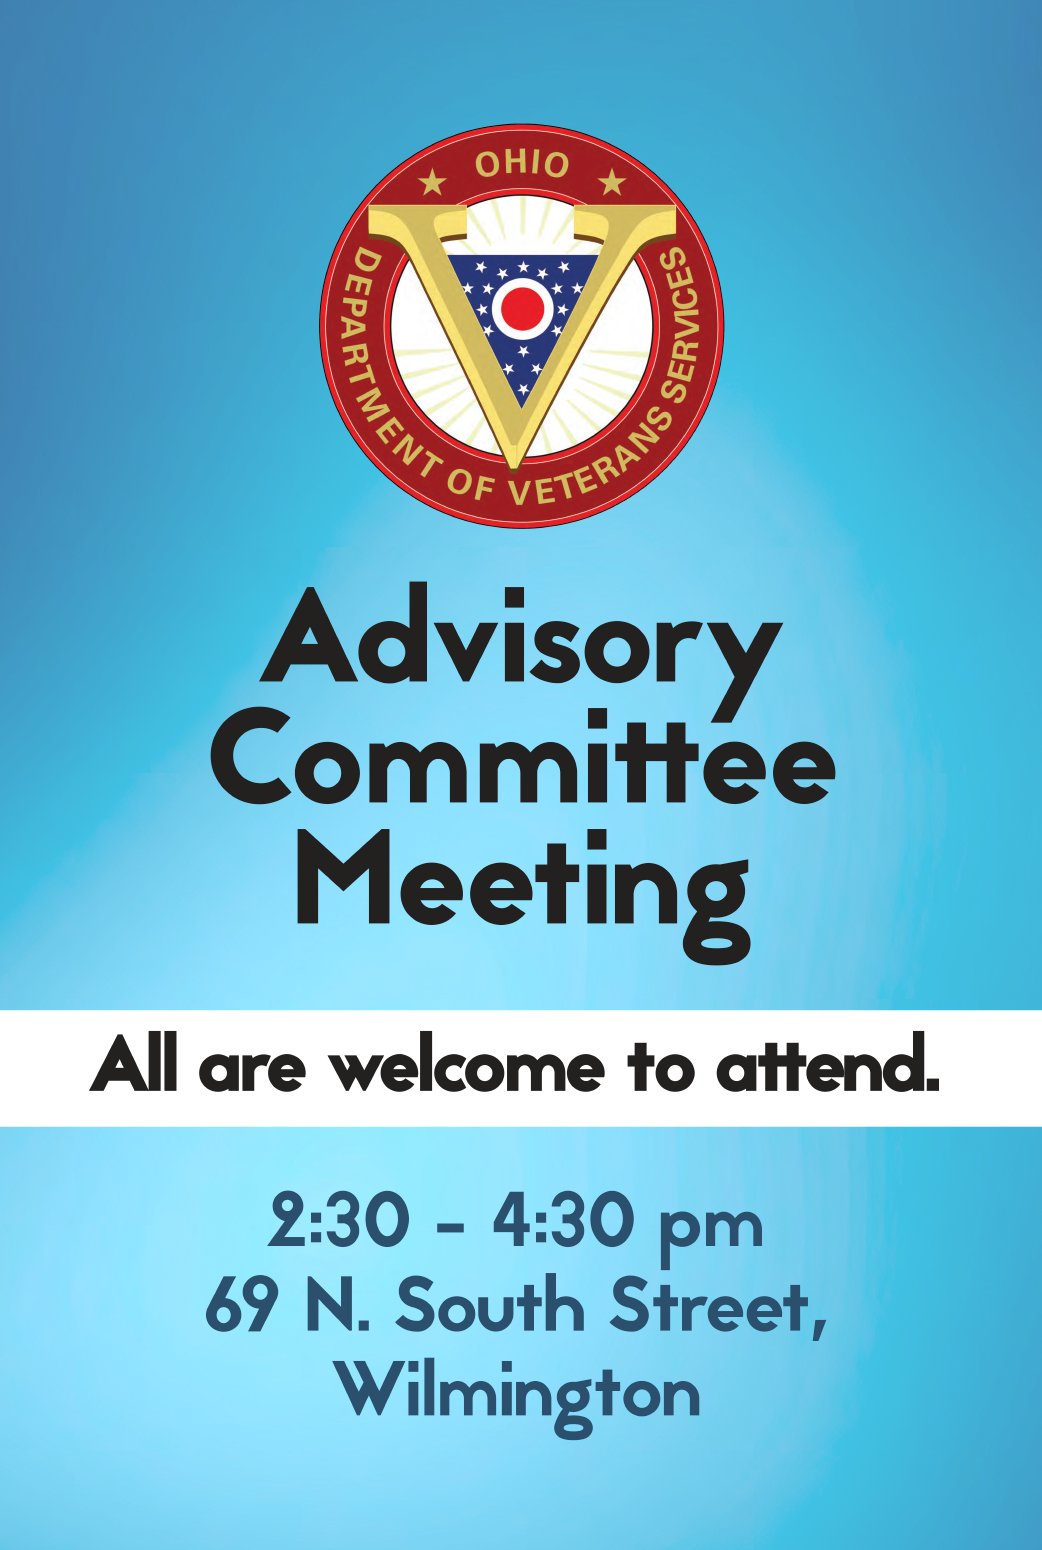 Advisory Committee meeting signage